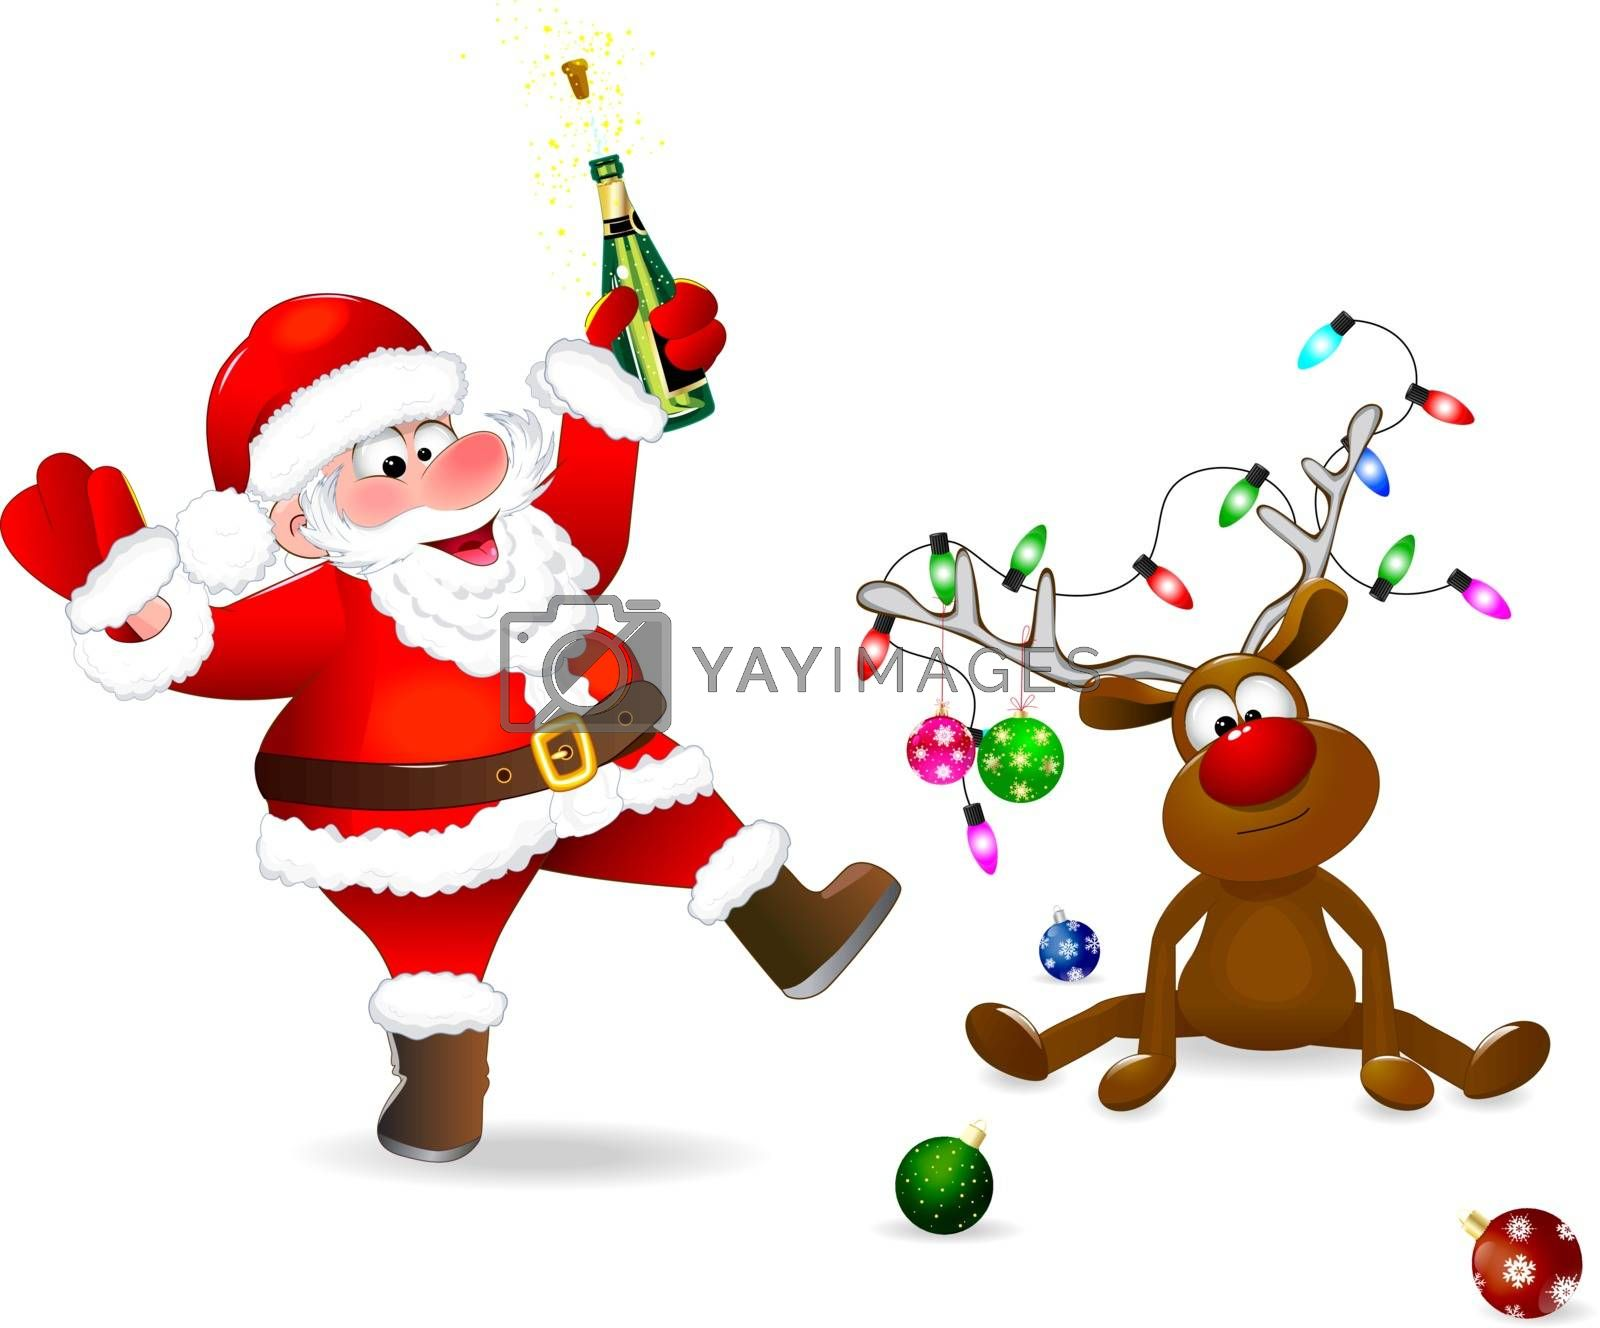 Santa Claus with a bottle in his hand. The deer is decorated with Christmas balls and a garland of lights. Santa and deer on a white background.